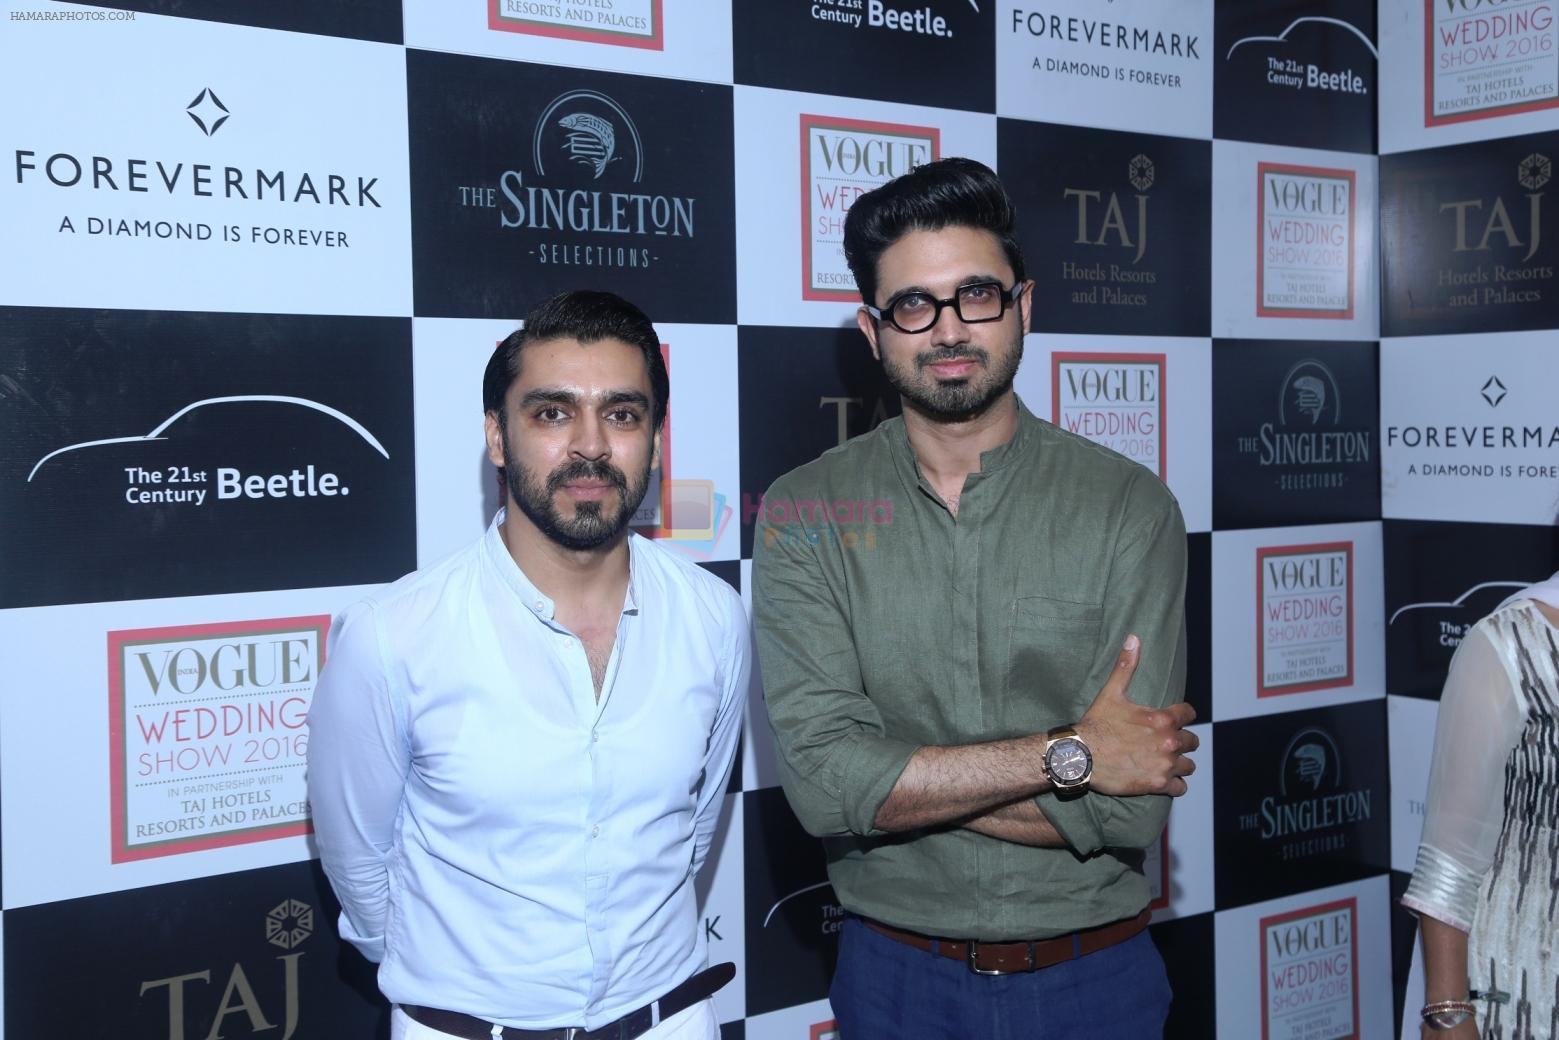 Designers Shivan and Narresh at Vogue Wedding Show 2016 at Taj Palace, New Delhi